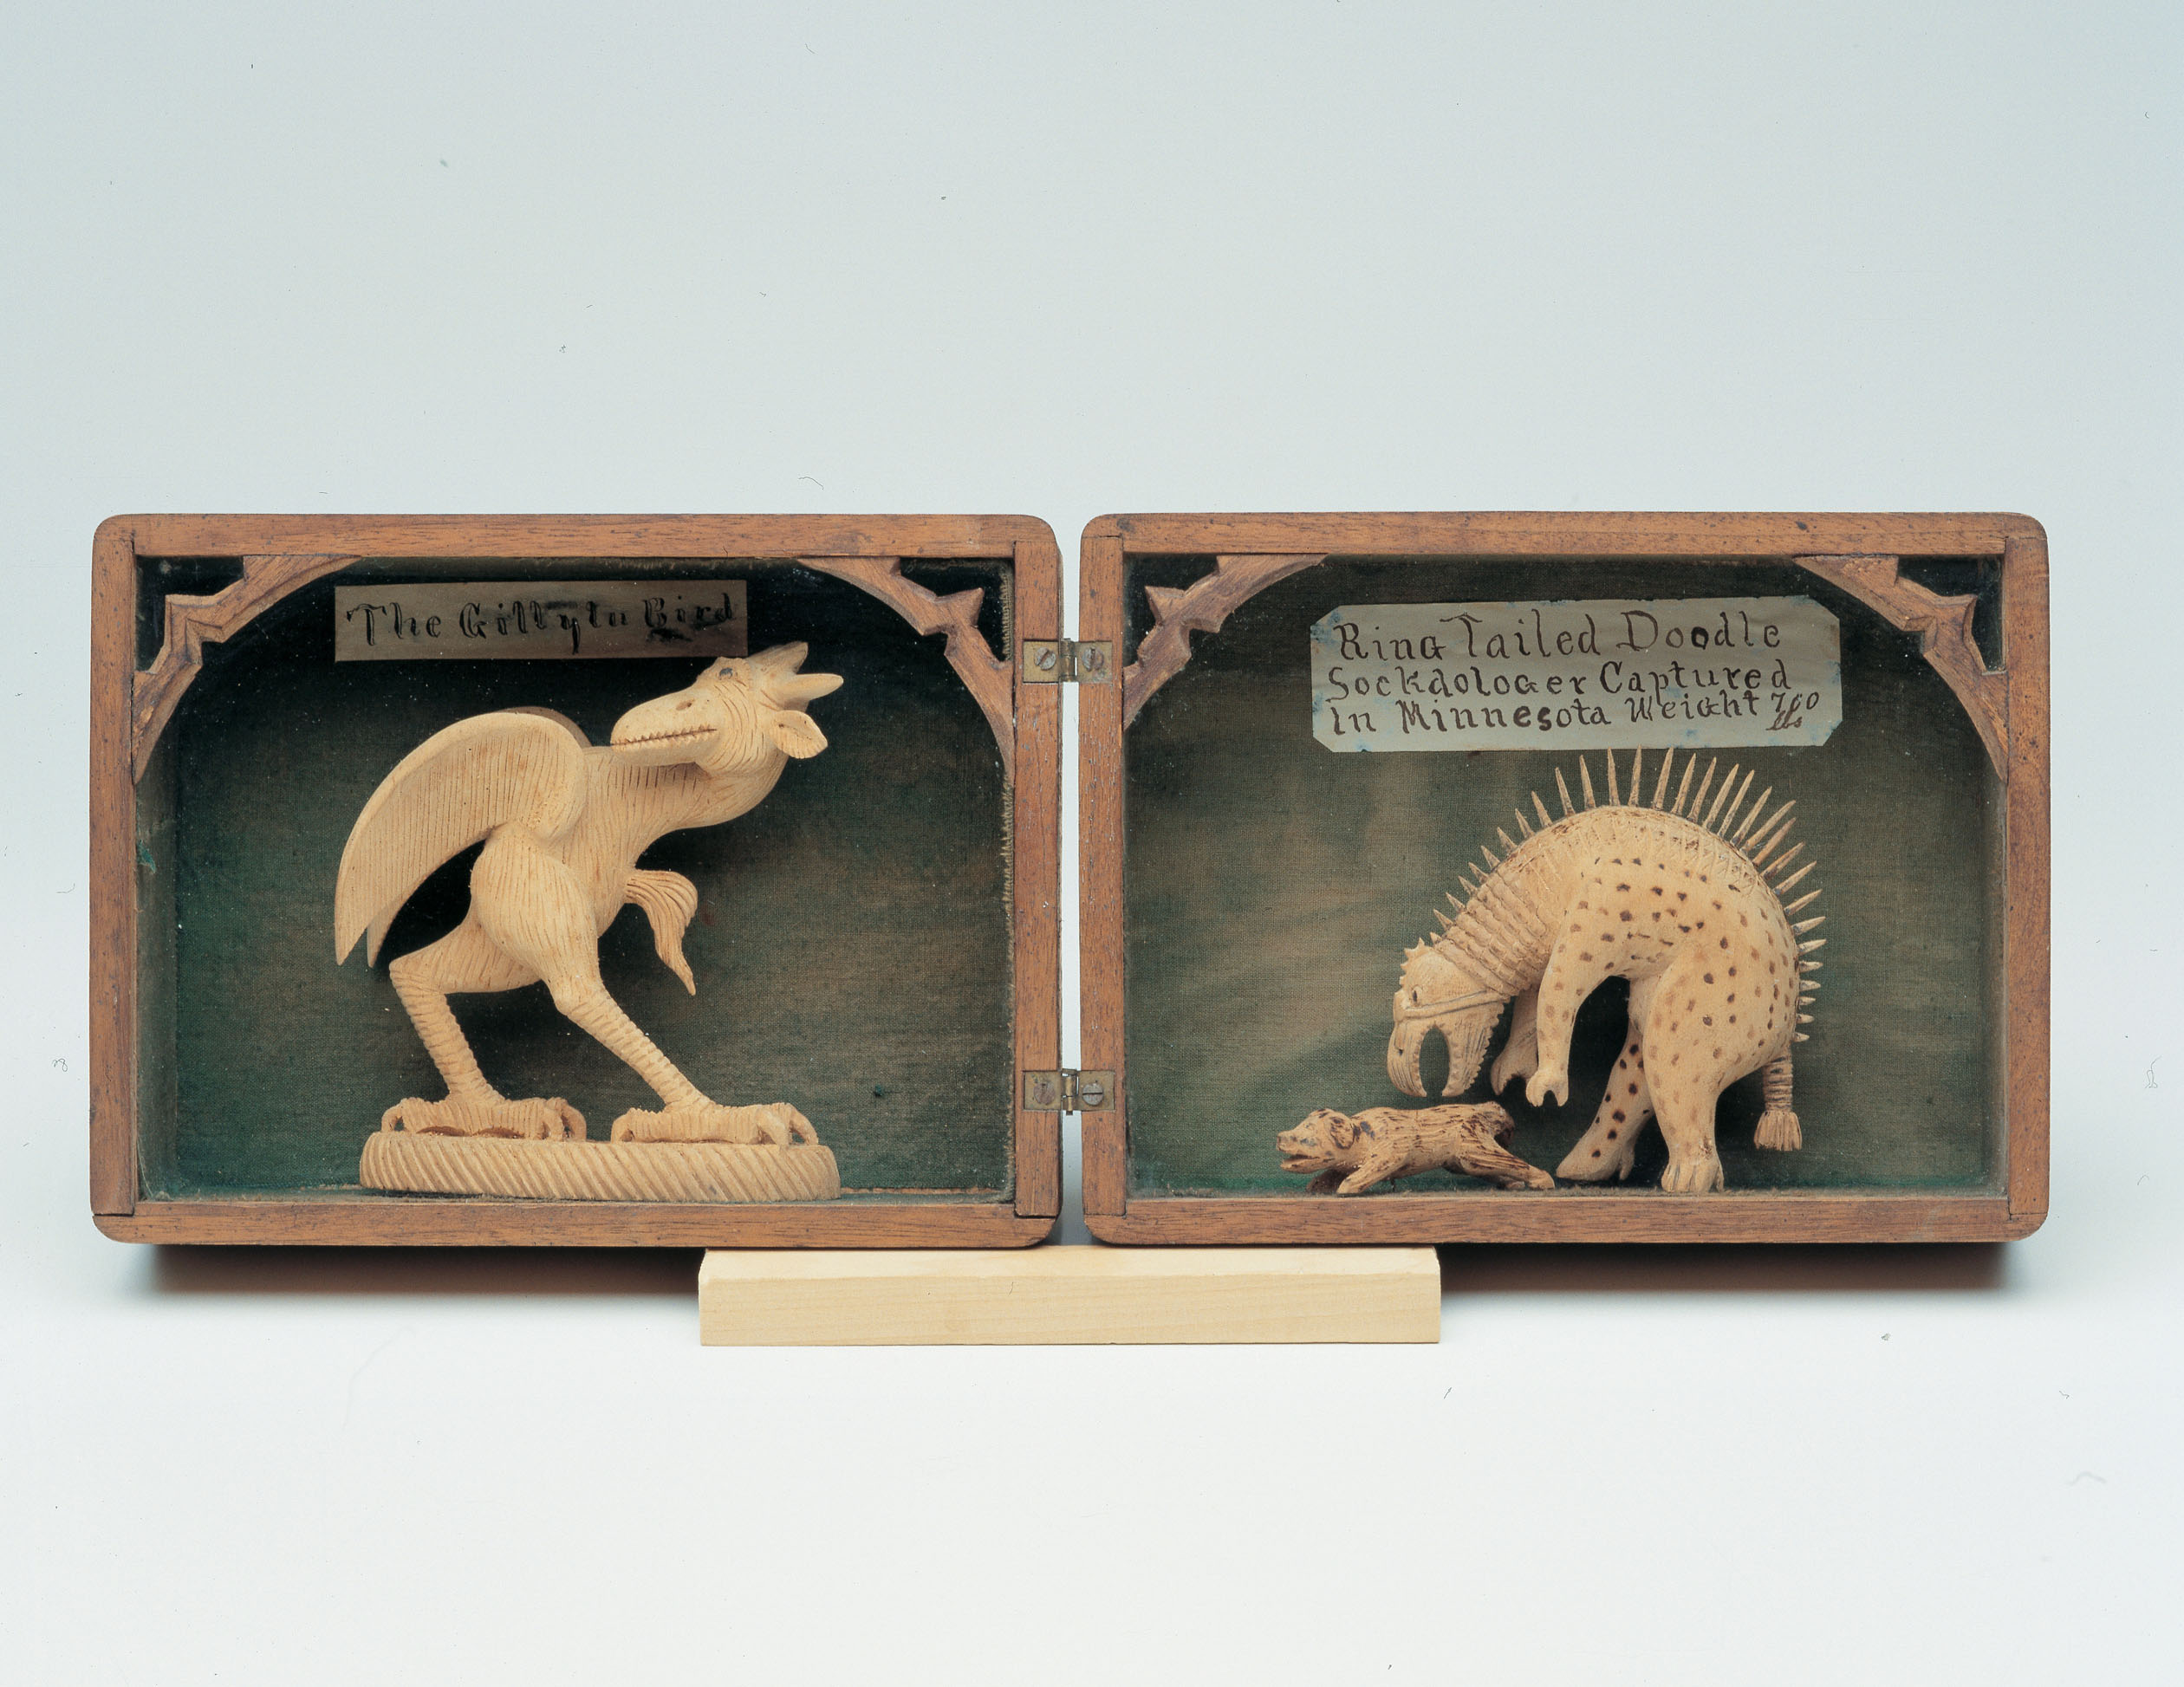 Levi Fisher Ames The Gillytu Bird and Ring Tailed Doodle Sockdologer Captured in Minnesota Weight 700 lbs (shadowbox), c. 1896-1910